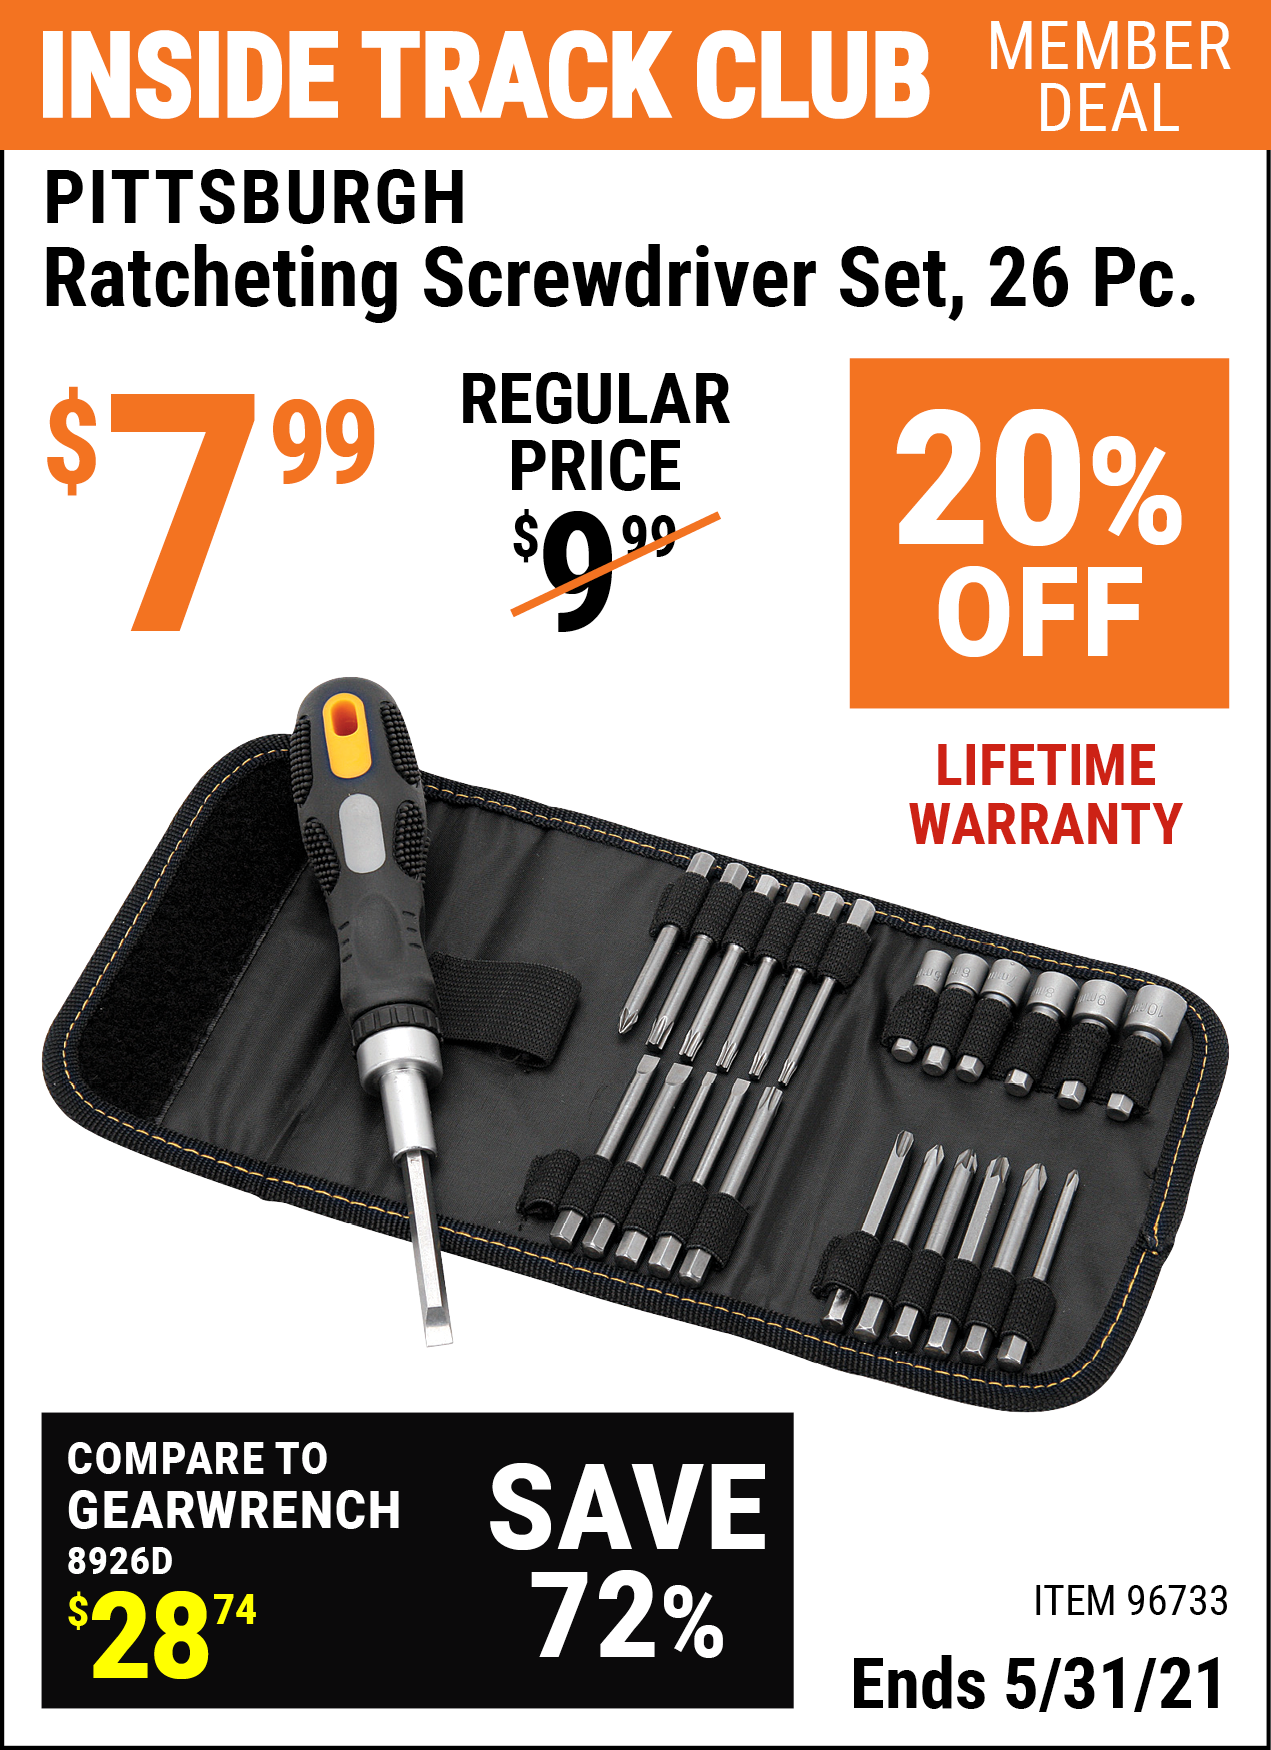 Inside Track Club members can buy the PITTSBURGH Ratcheting Screwdriver Set 26 Pc. (Item 96733) for $7.99, valid through 5/31/2021.